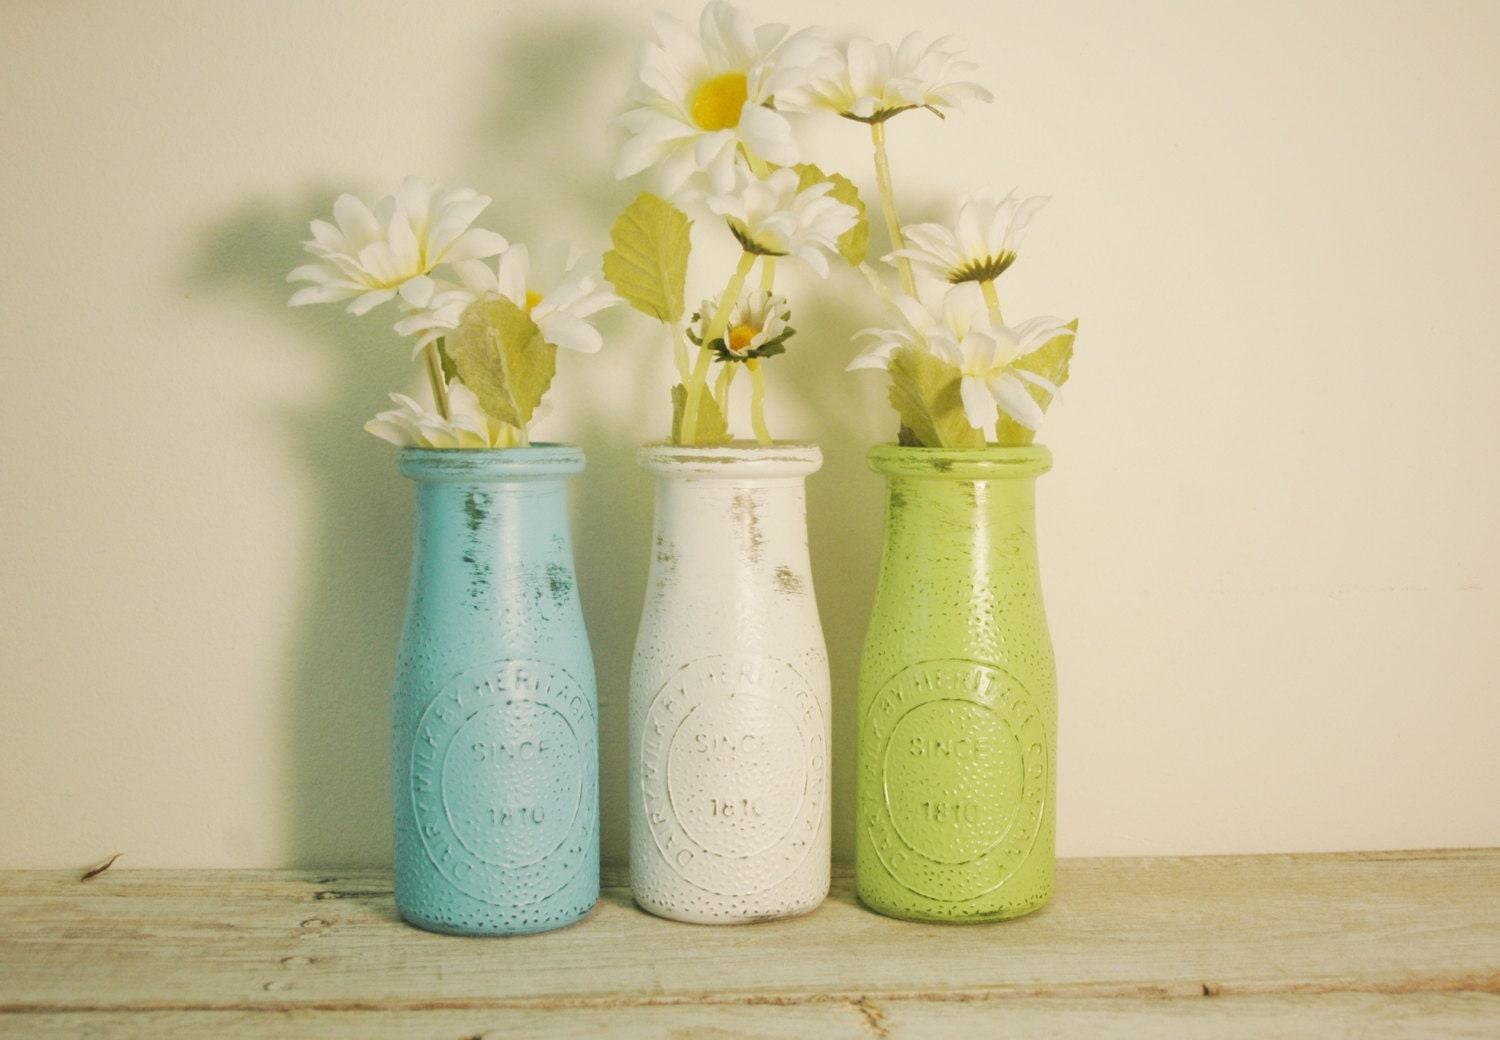 Painted milk bottle decor table decor country decor fall for Home decor using plastic bottles